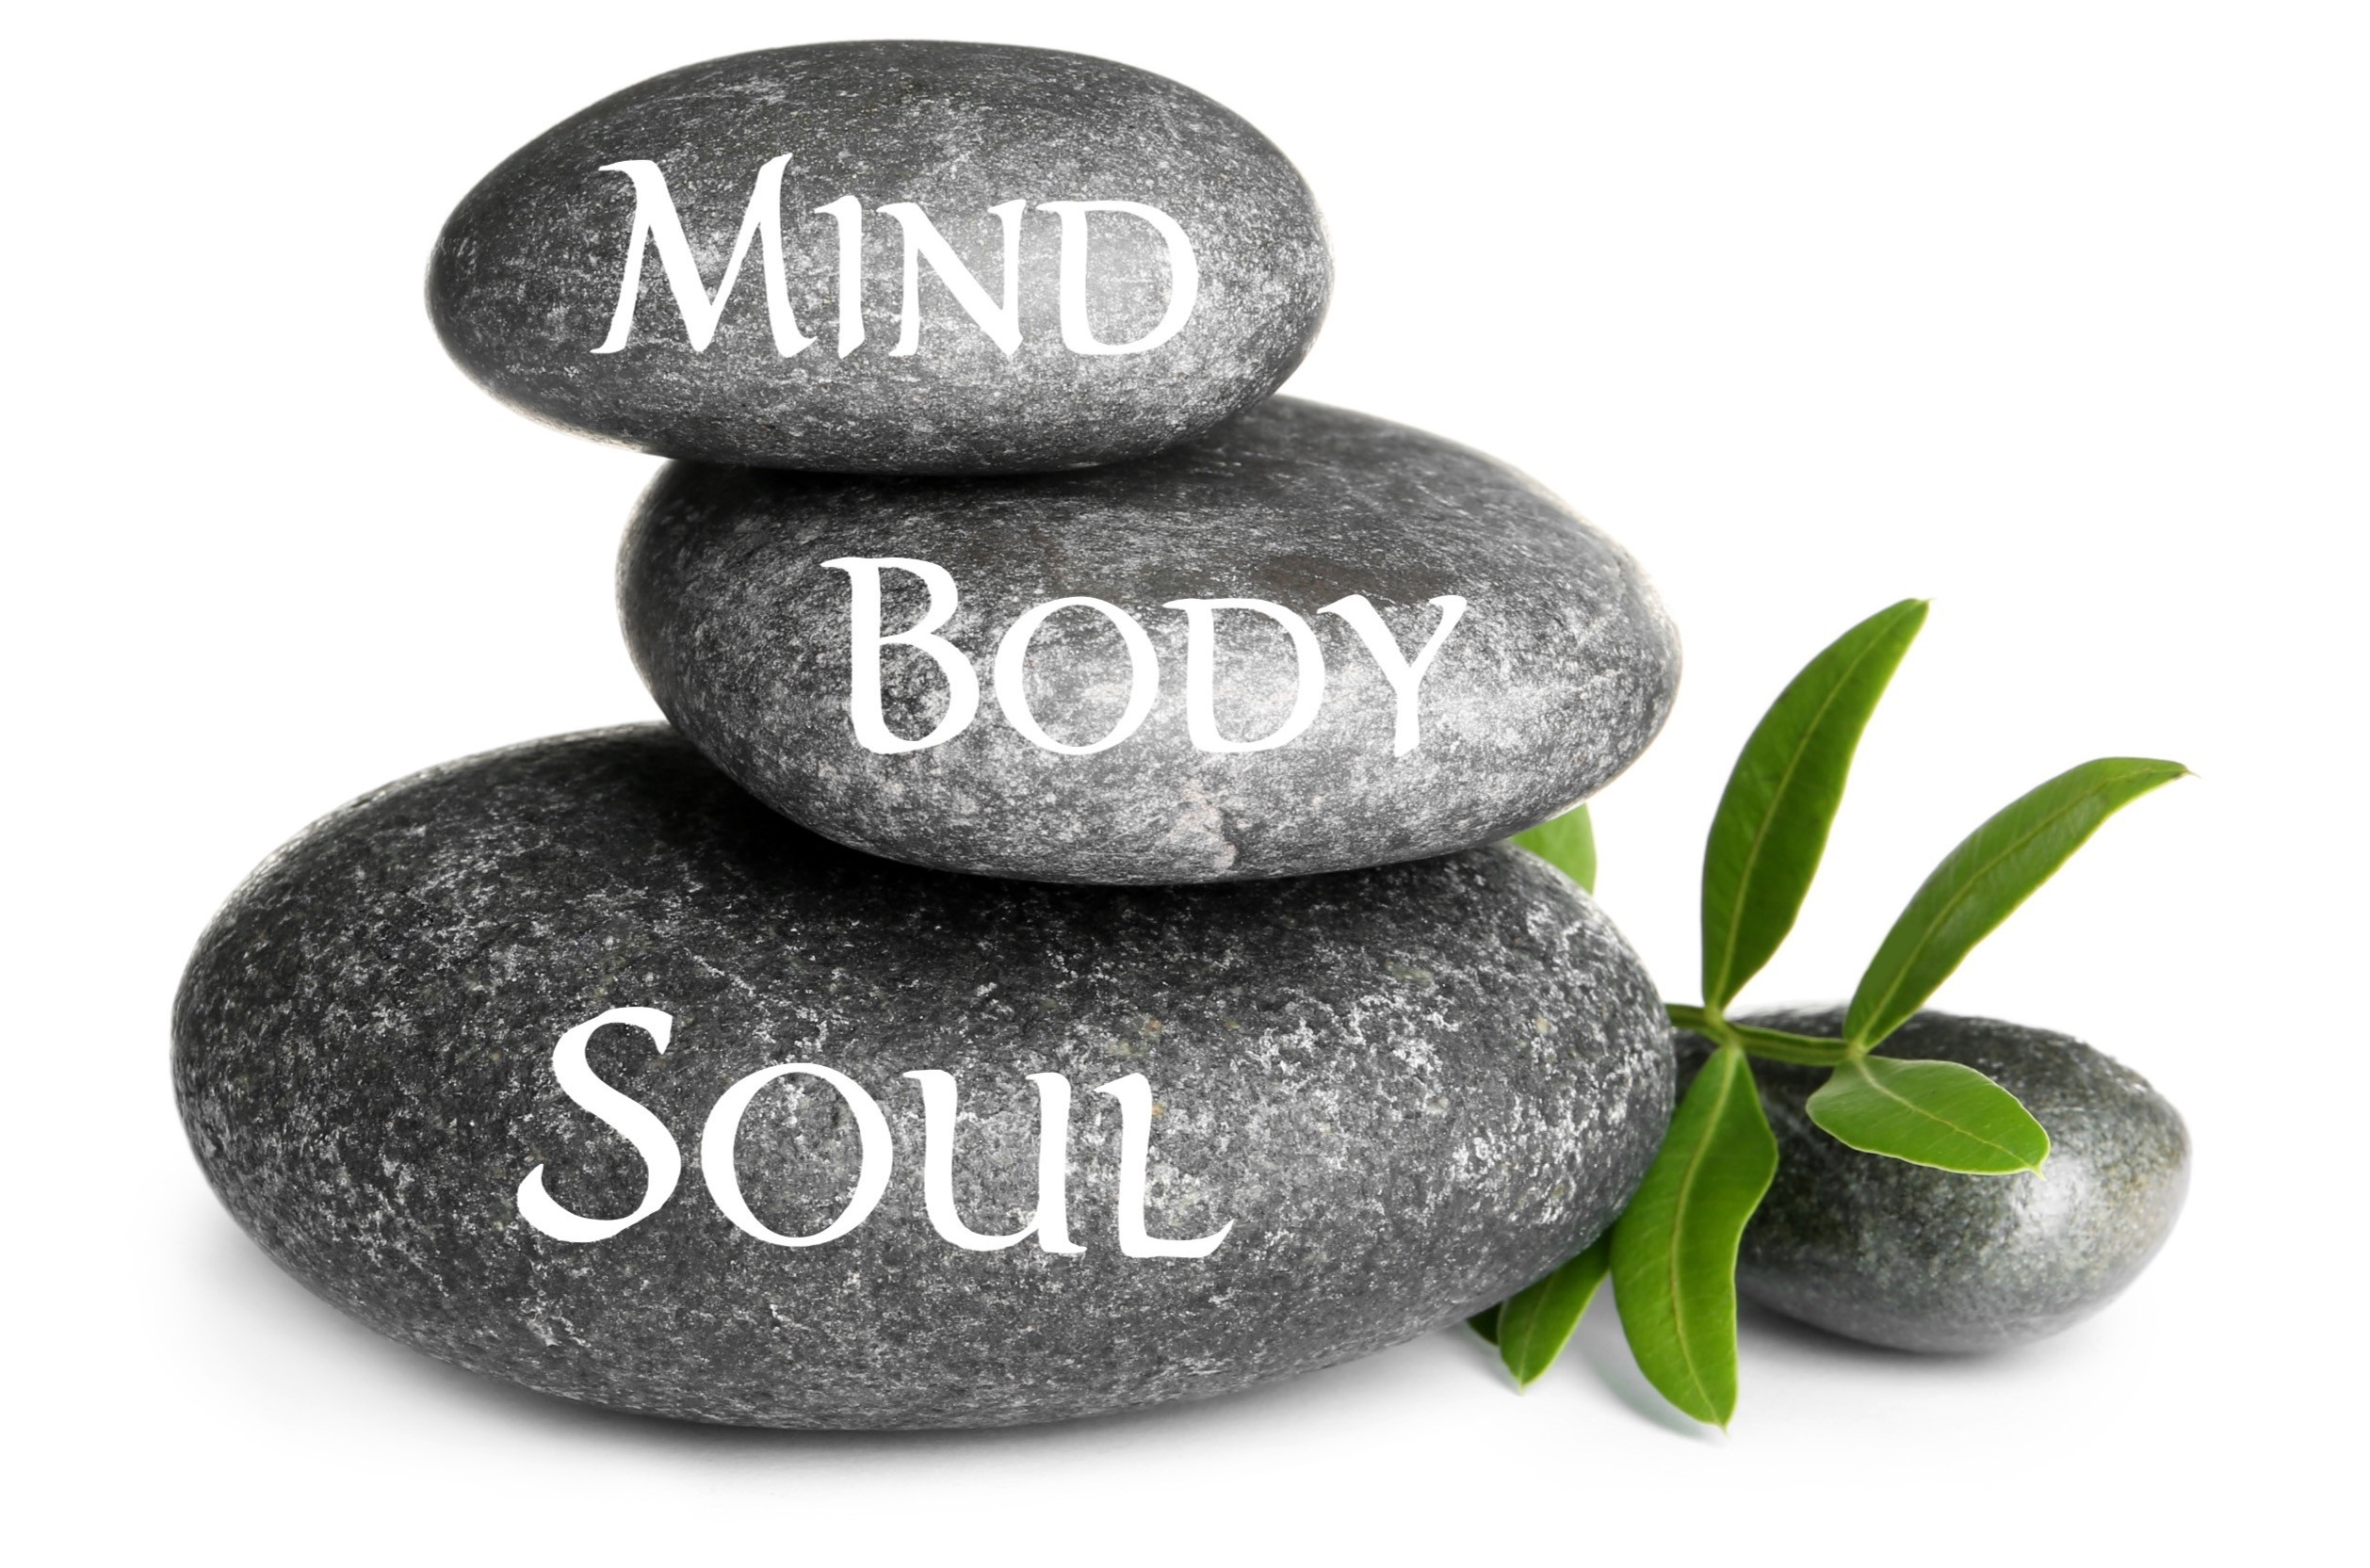 R&R - combined reiki and reflexology